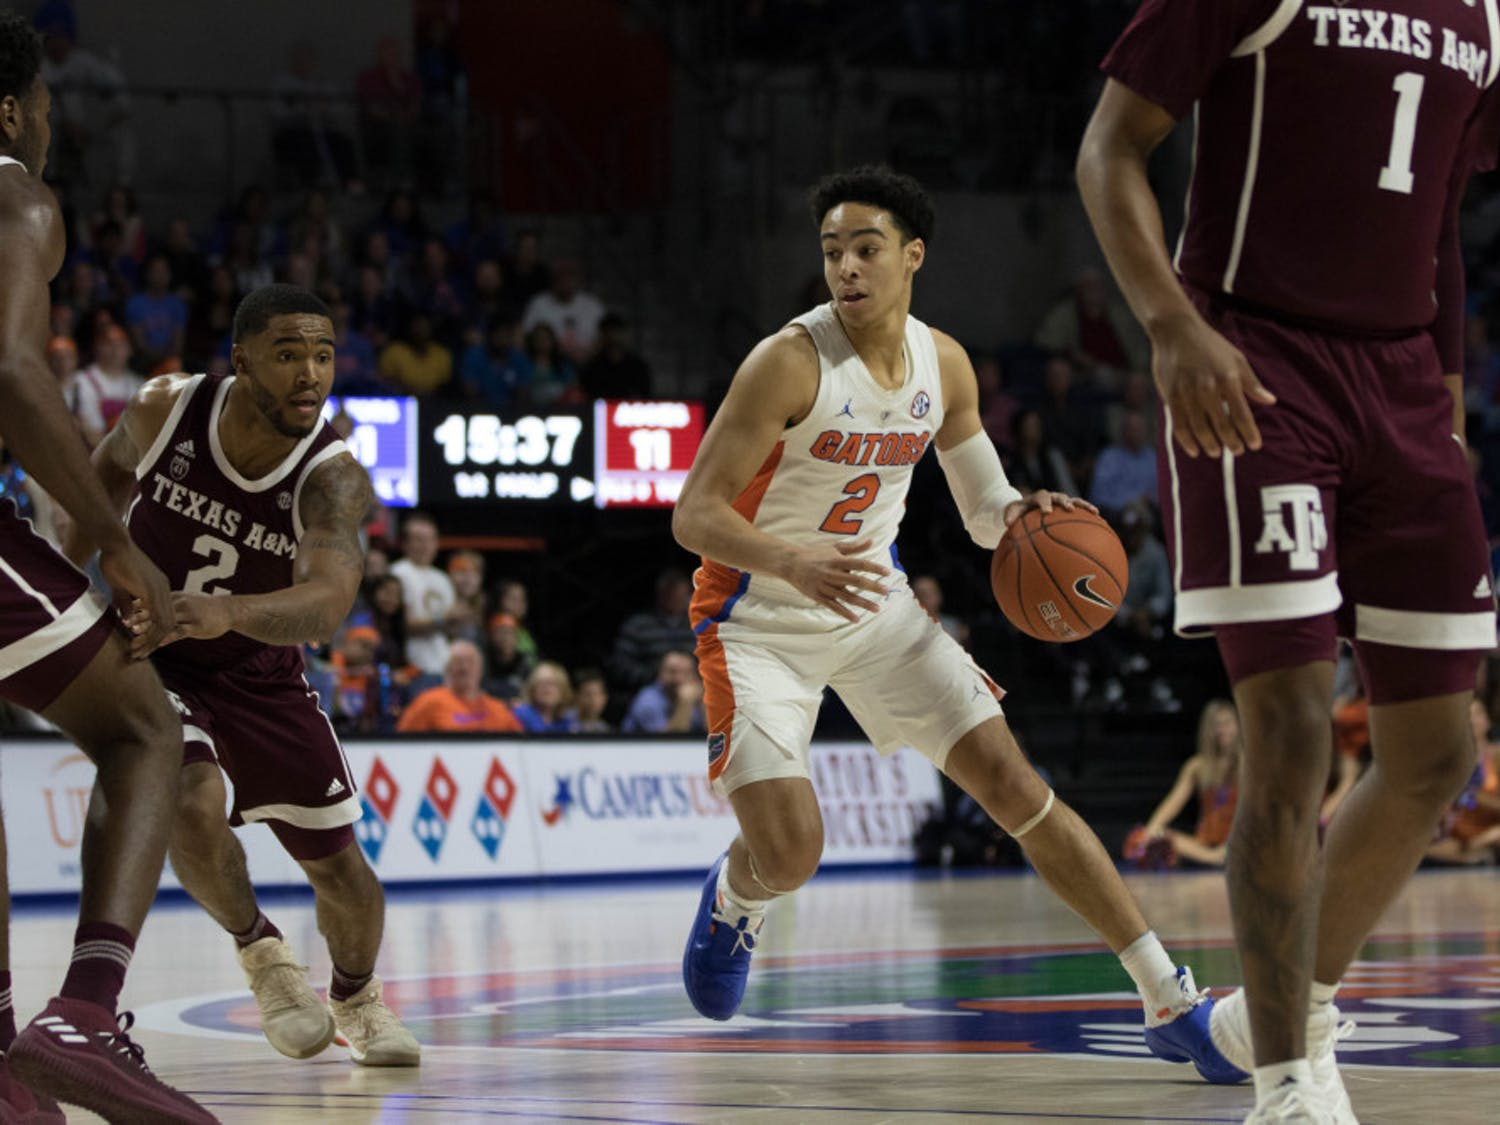 Florida guard Andrew Nembhard recorded 11 assists in Florida's 81-72 win over Texas A&M on Jan. 22.